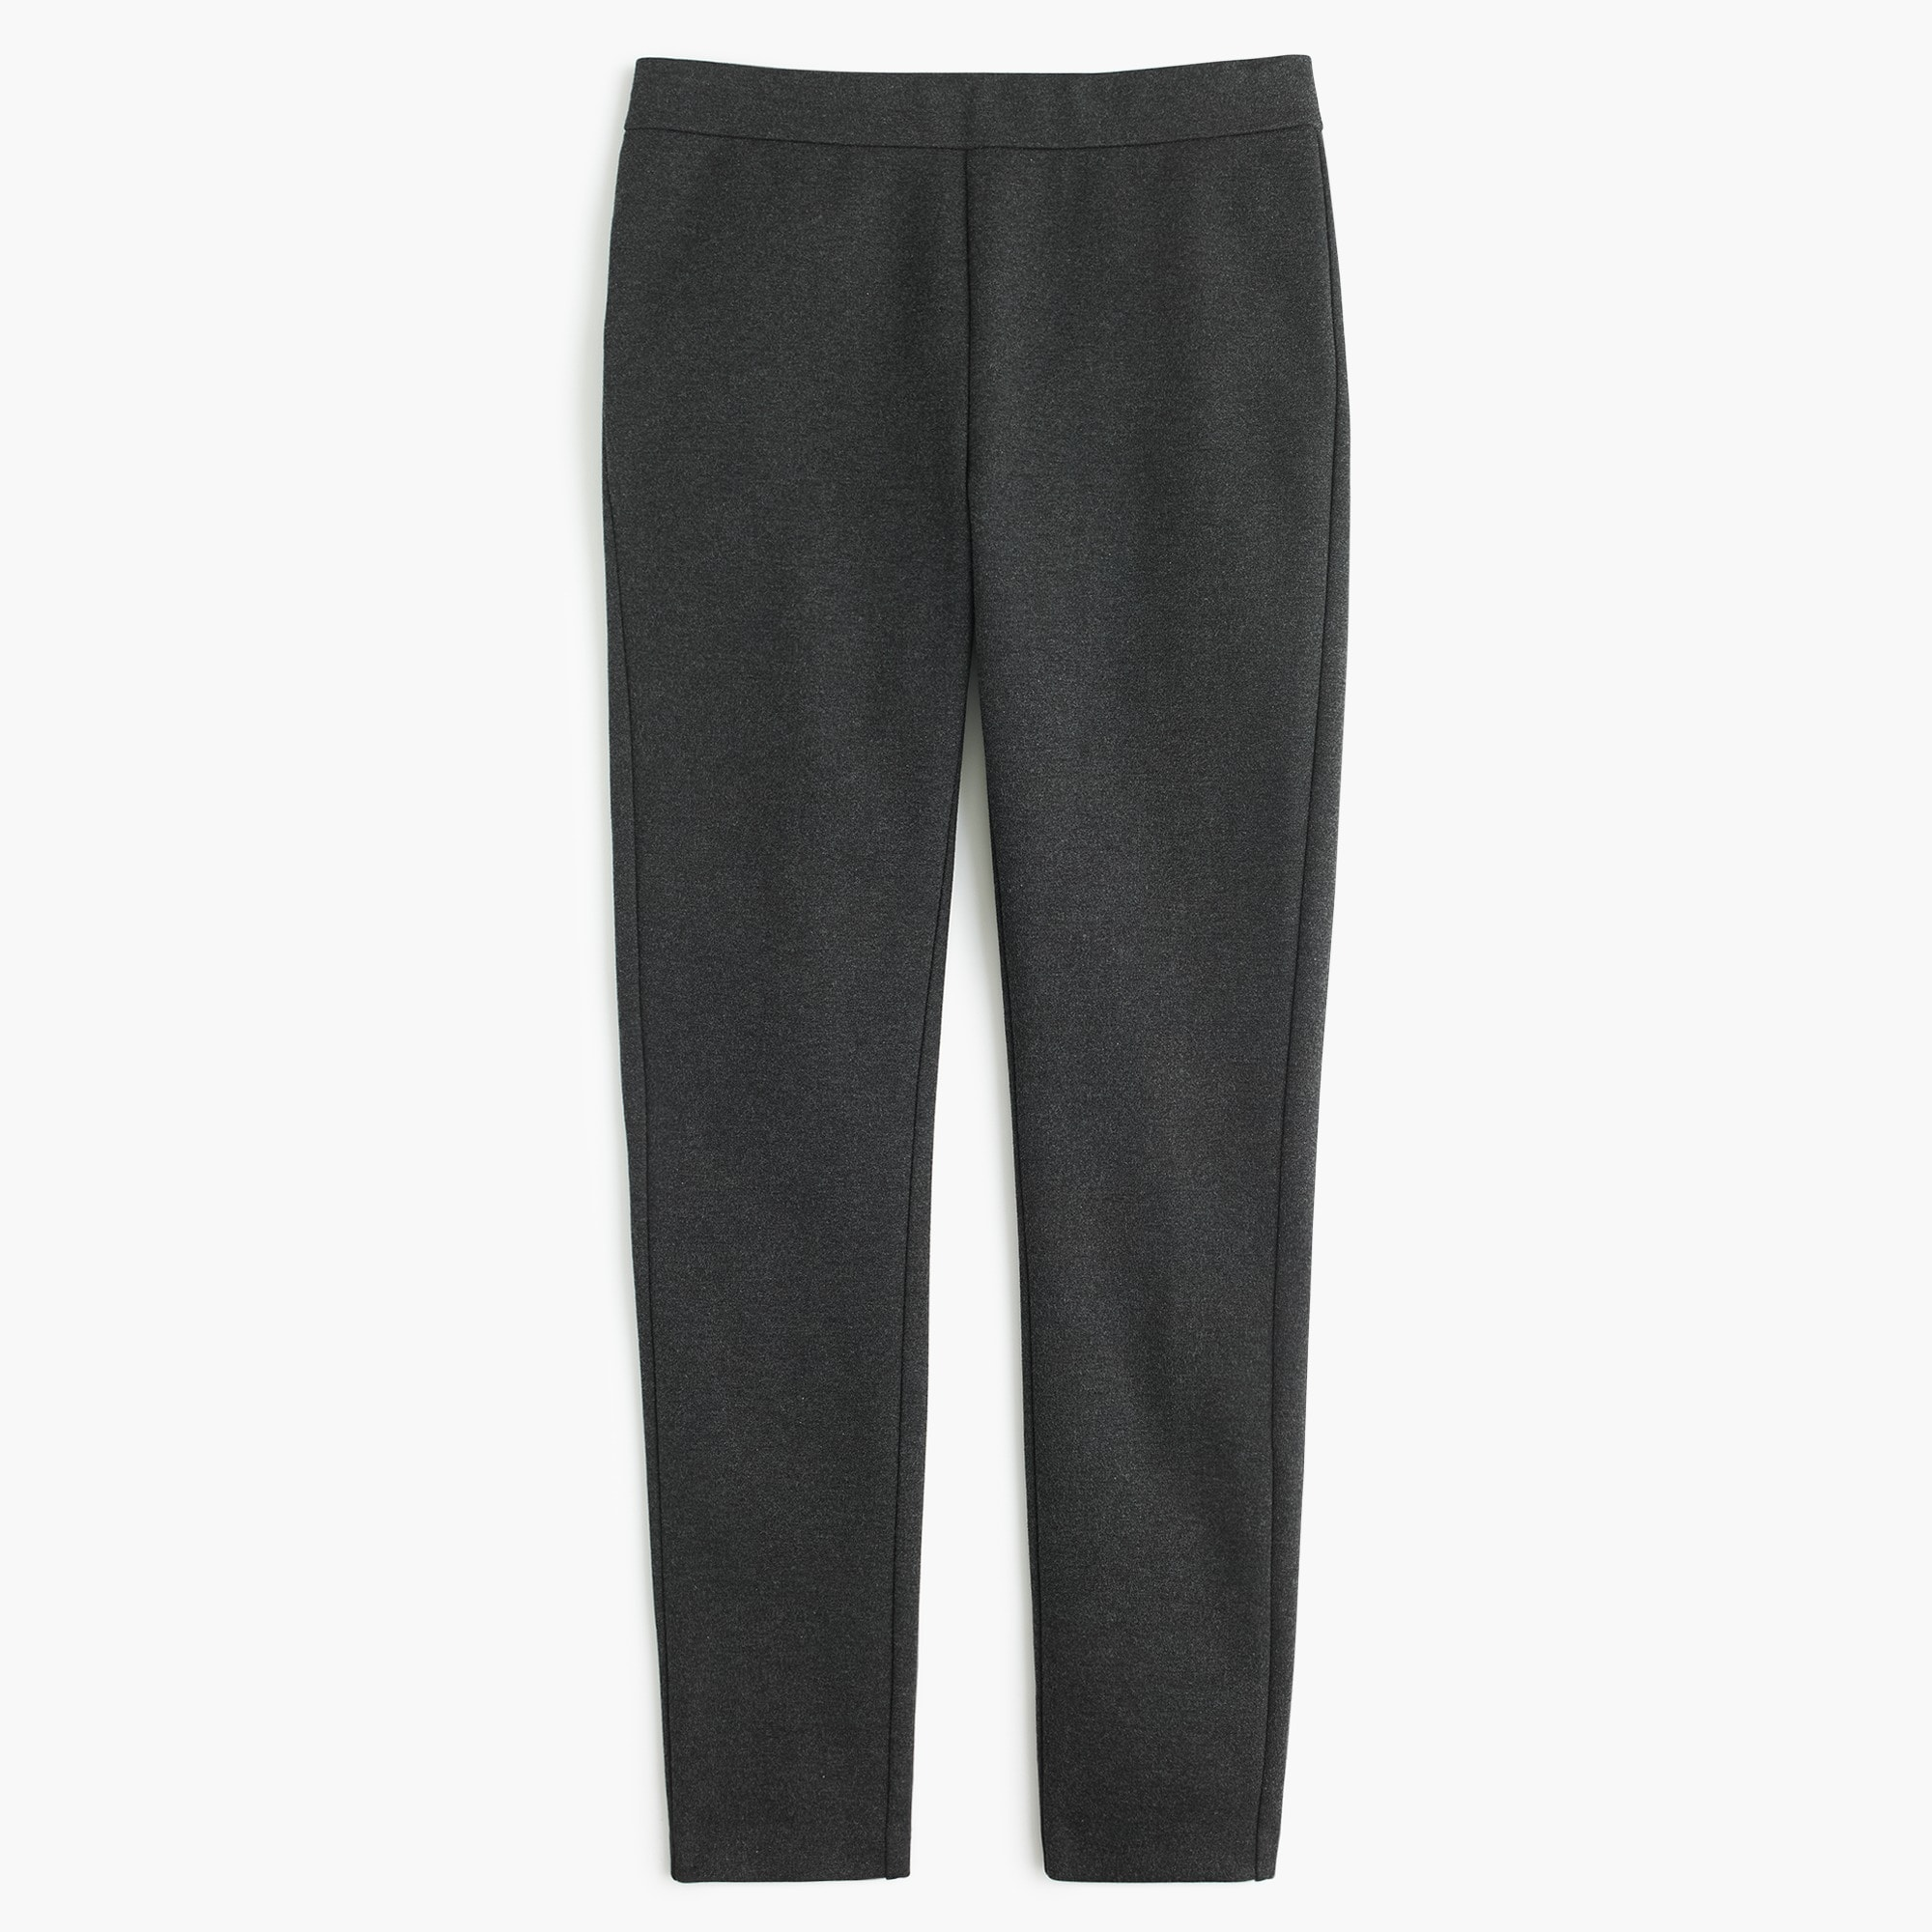 Image 2 for Any day pant in stretch ponte